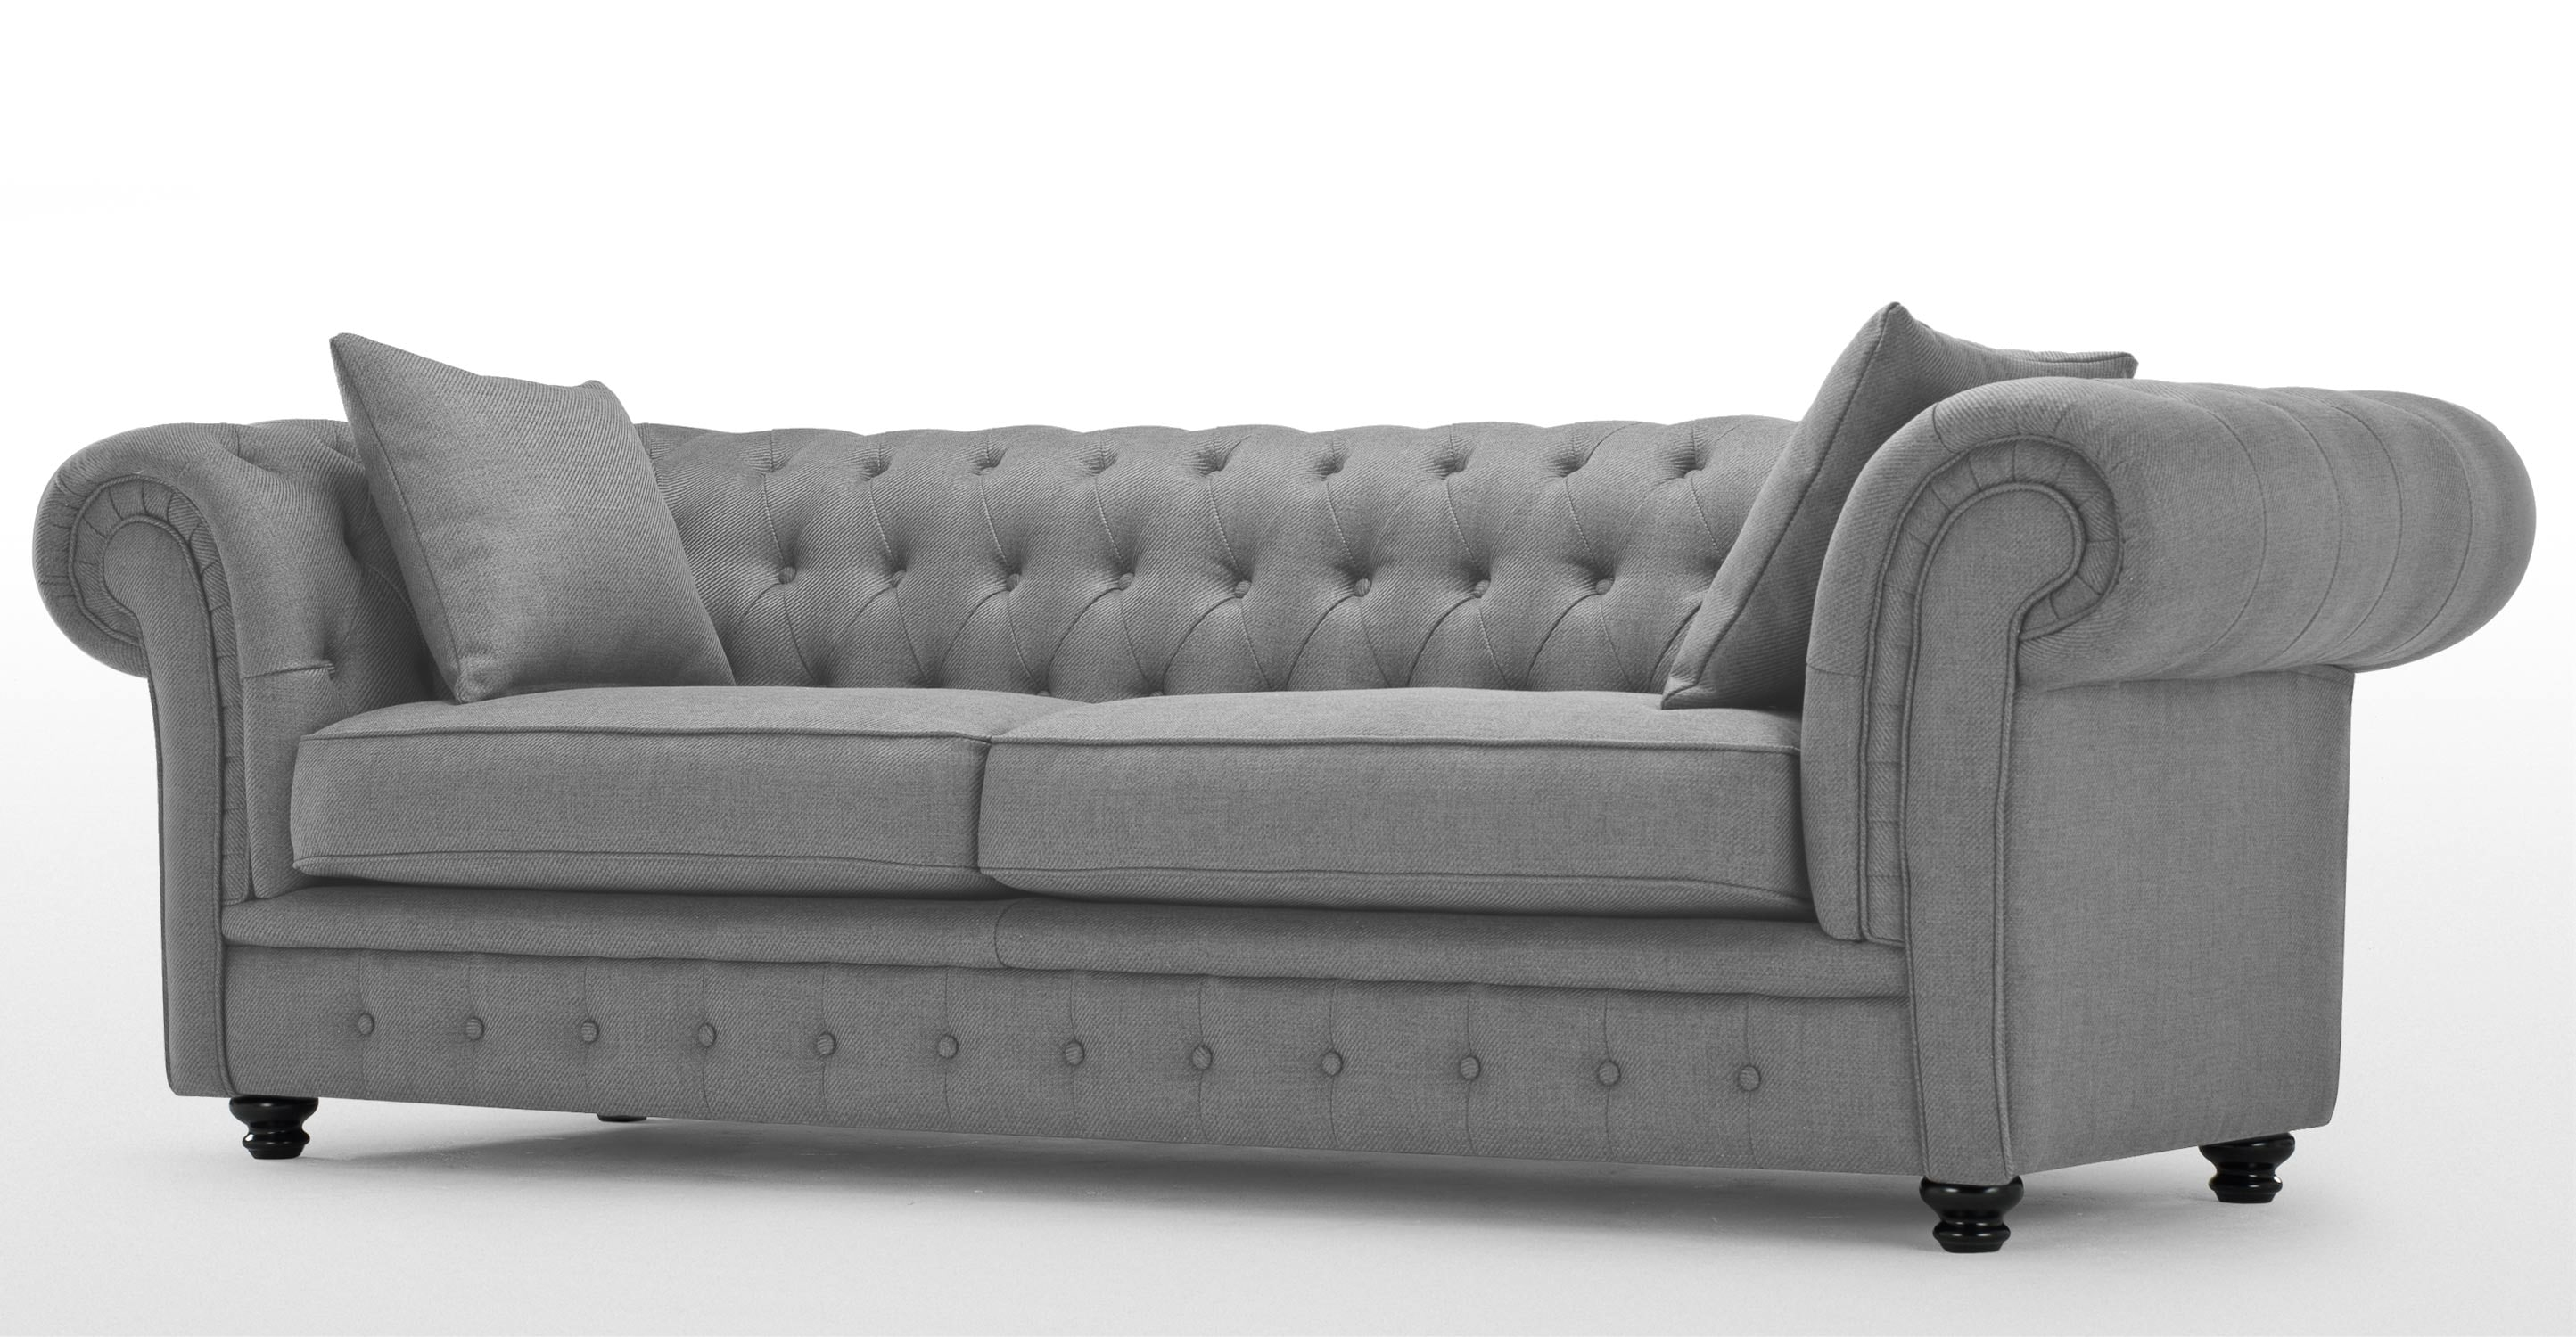 Branagh 3 Seater Grey Chesterfield Sofa Made Intended For Chesterfield Furniture (Image 3 of 15)